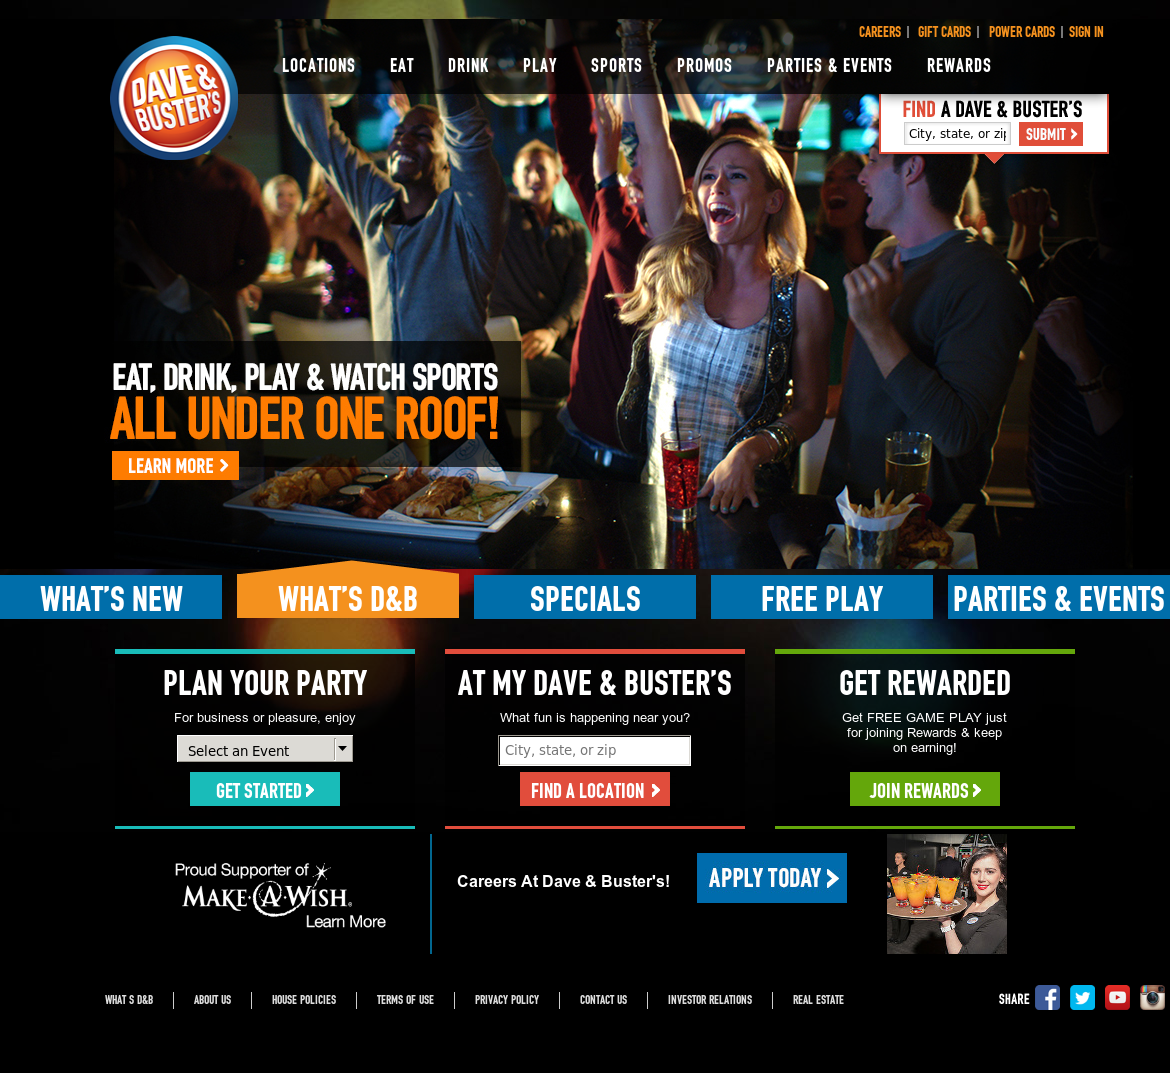 Dave & Buster's Concept